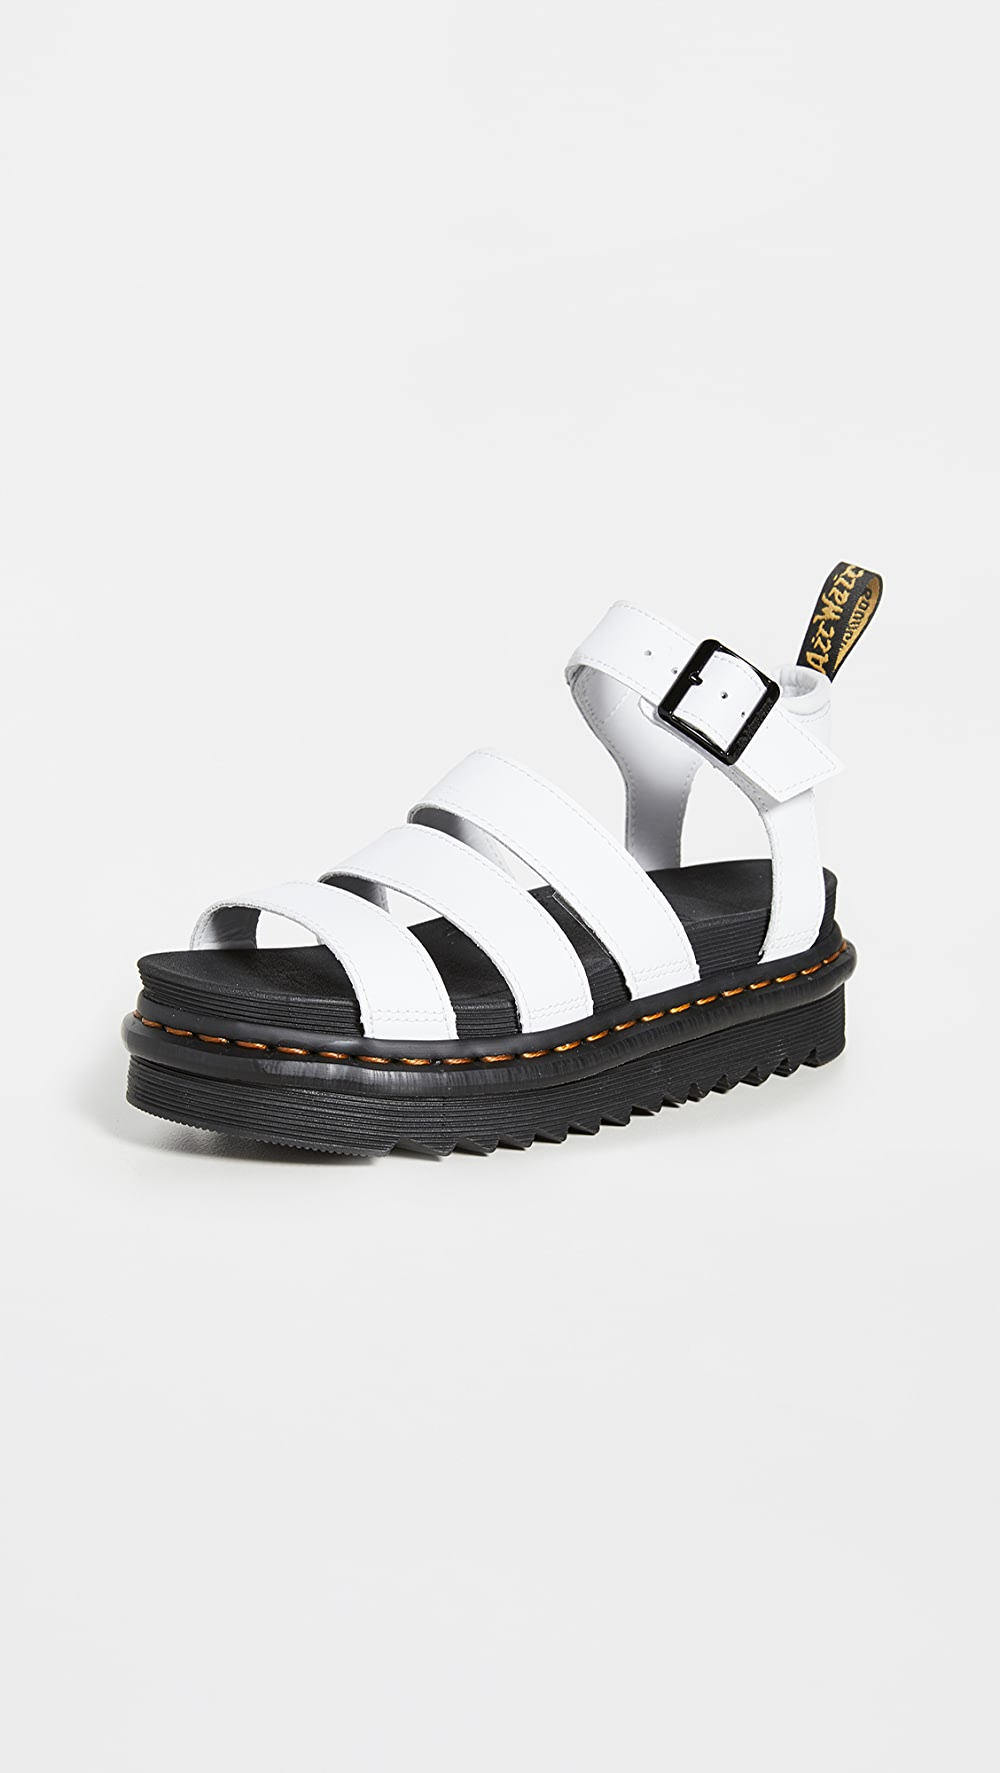 Hearty Dr. Martens - Blaire Chunky 3 Strap Sandals Sale Overall Discount 50-70%